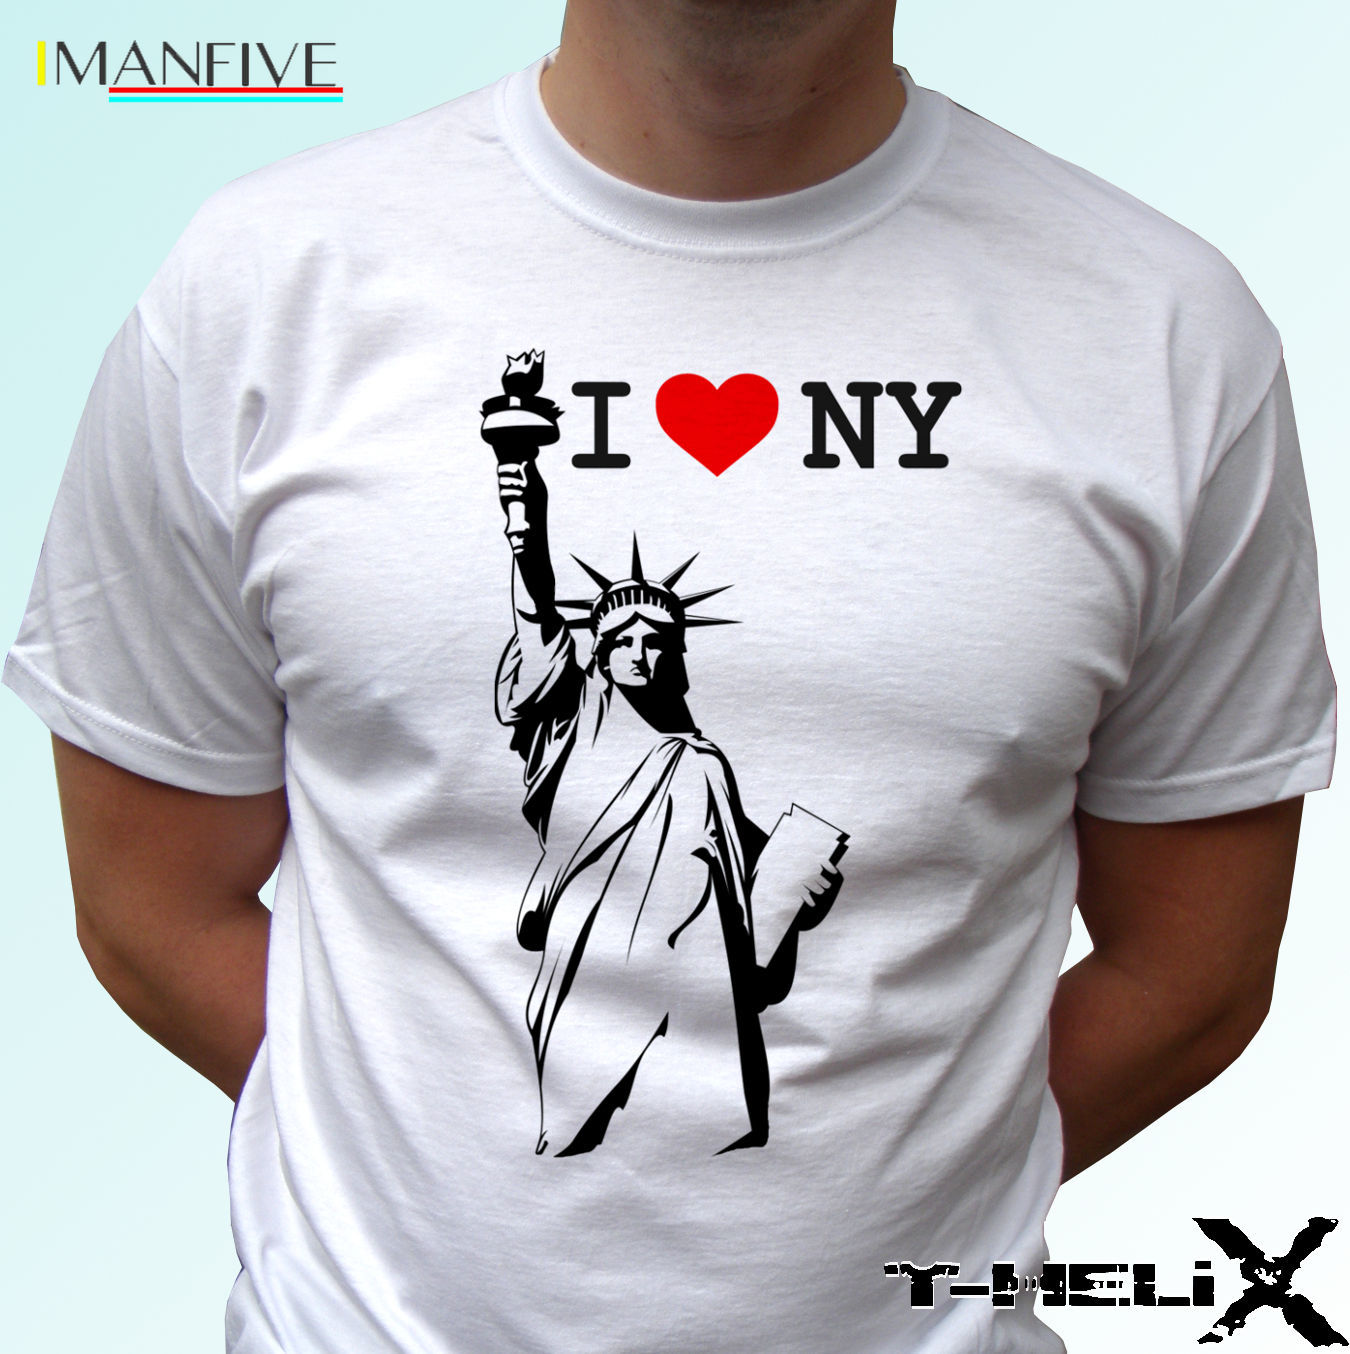 <font><b>I</b></font> <font><b>Love</b></font> New York - white t <font><b>shirt</b></font> top USA <font><b>NY</b></font> - mens womens kids baby sizes image